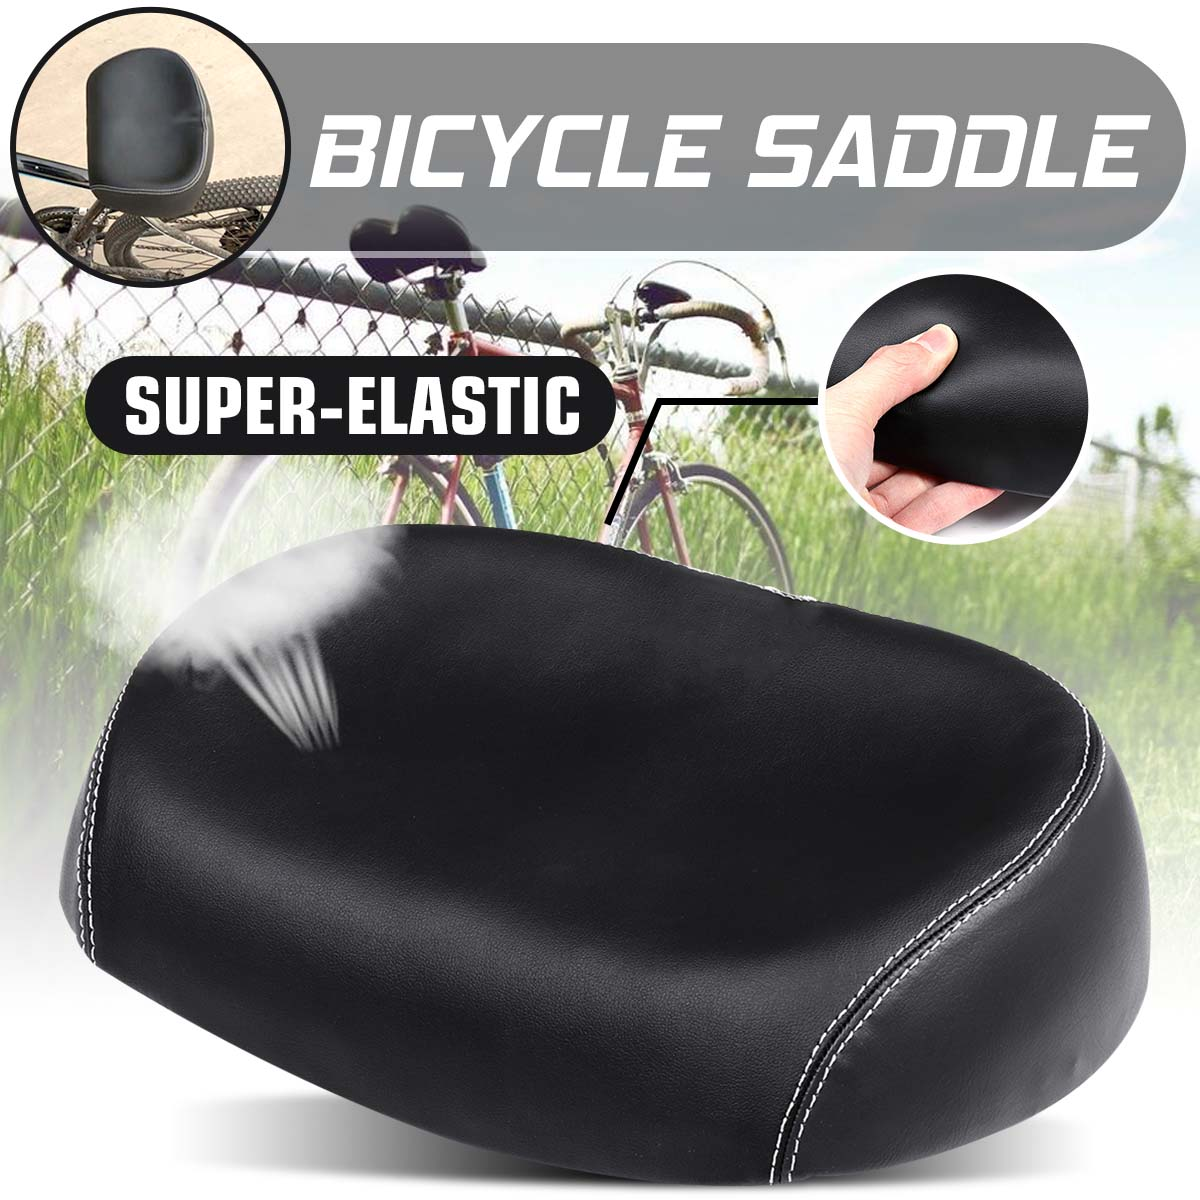 Bicycle Saddle Big wide Comfortable Bike Seat Softer for MTB Mountain